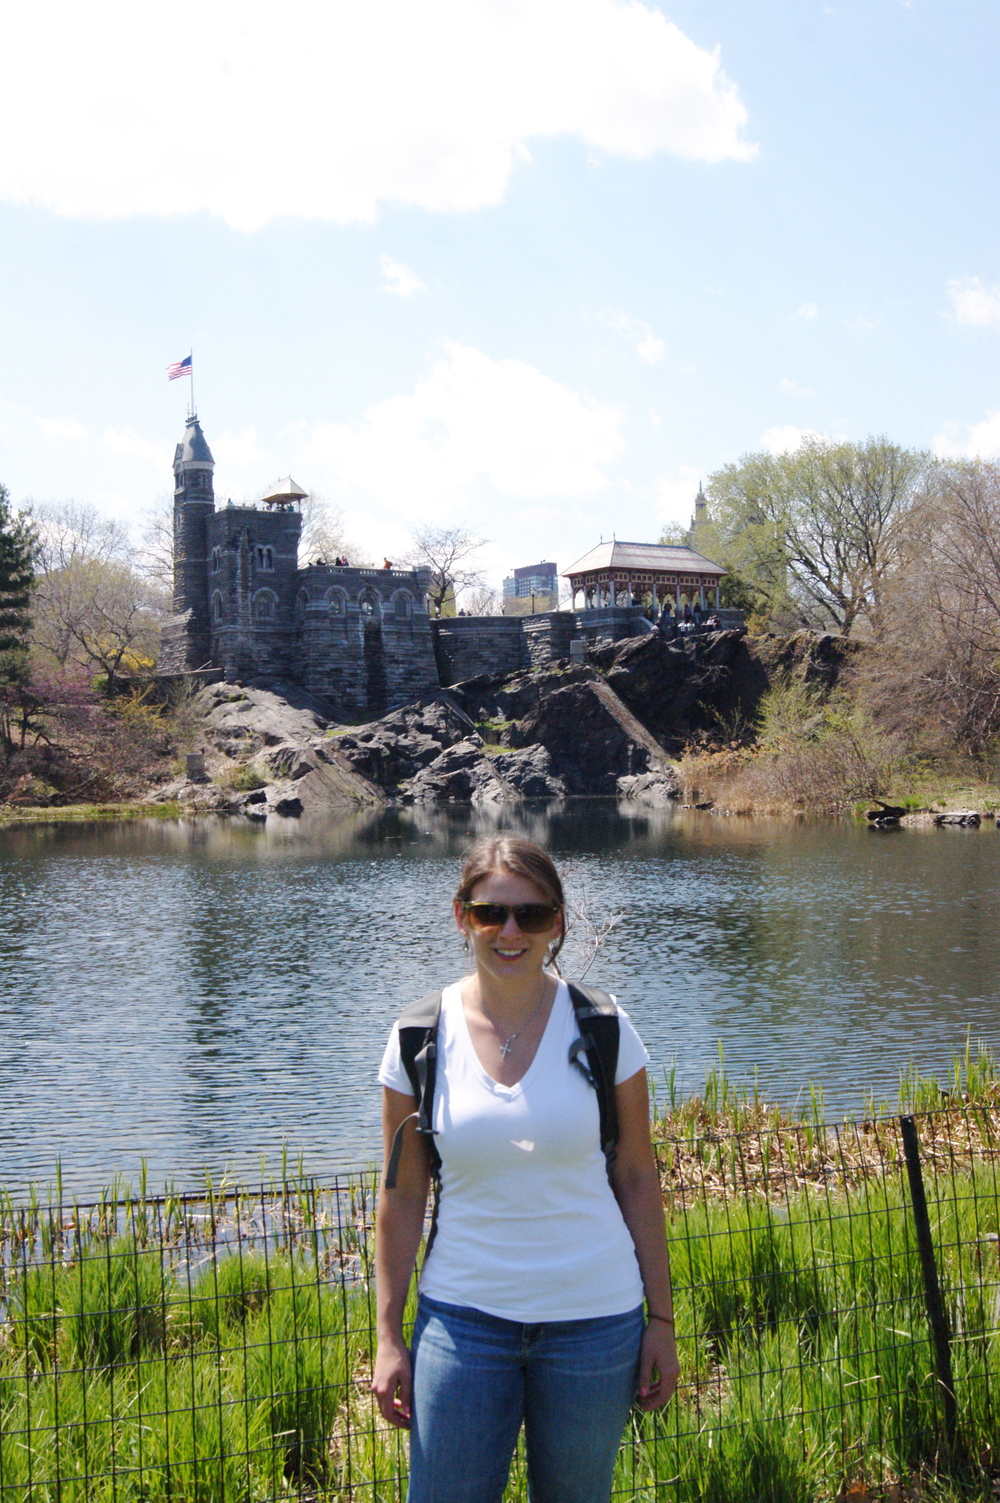 Me, in front of the Belvedere Castle